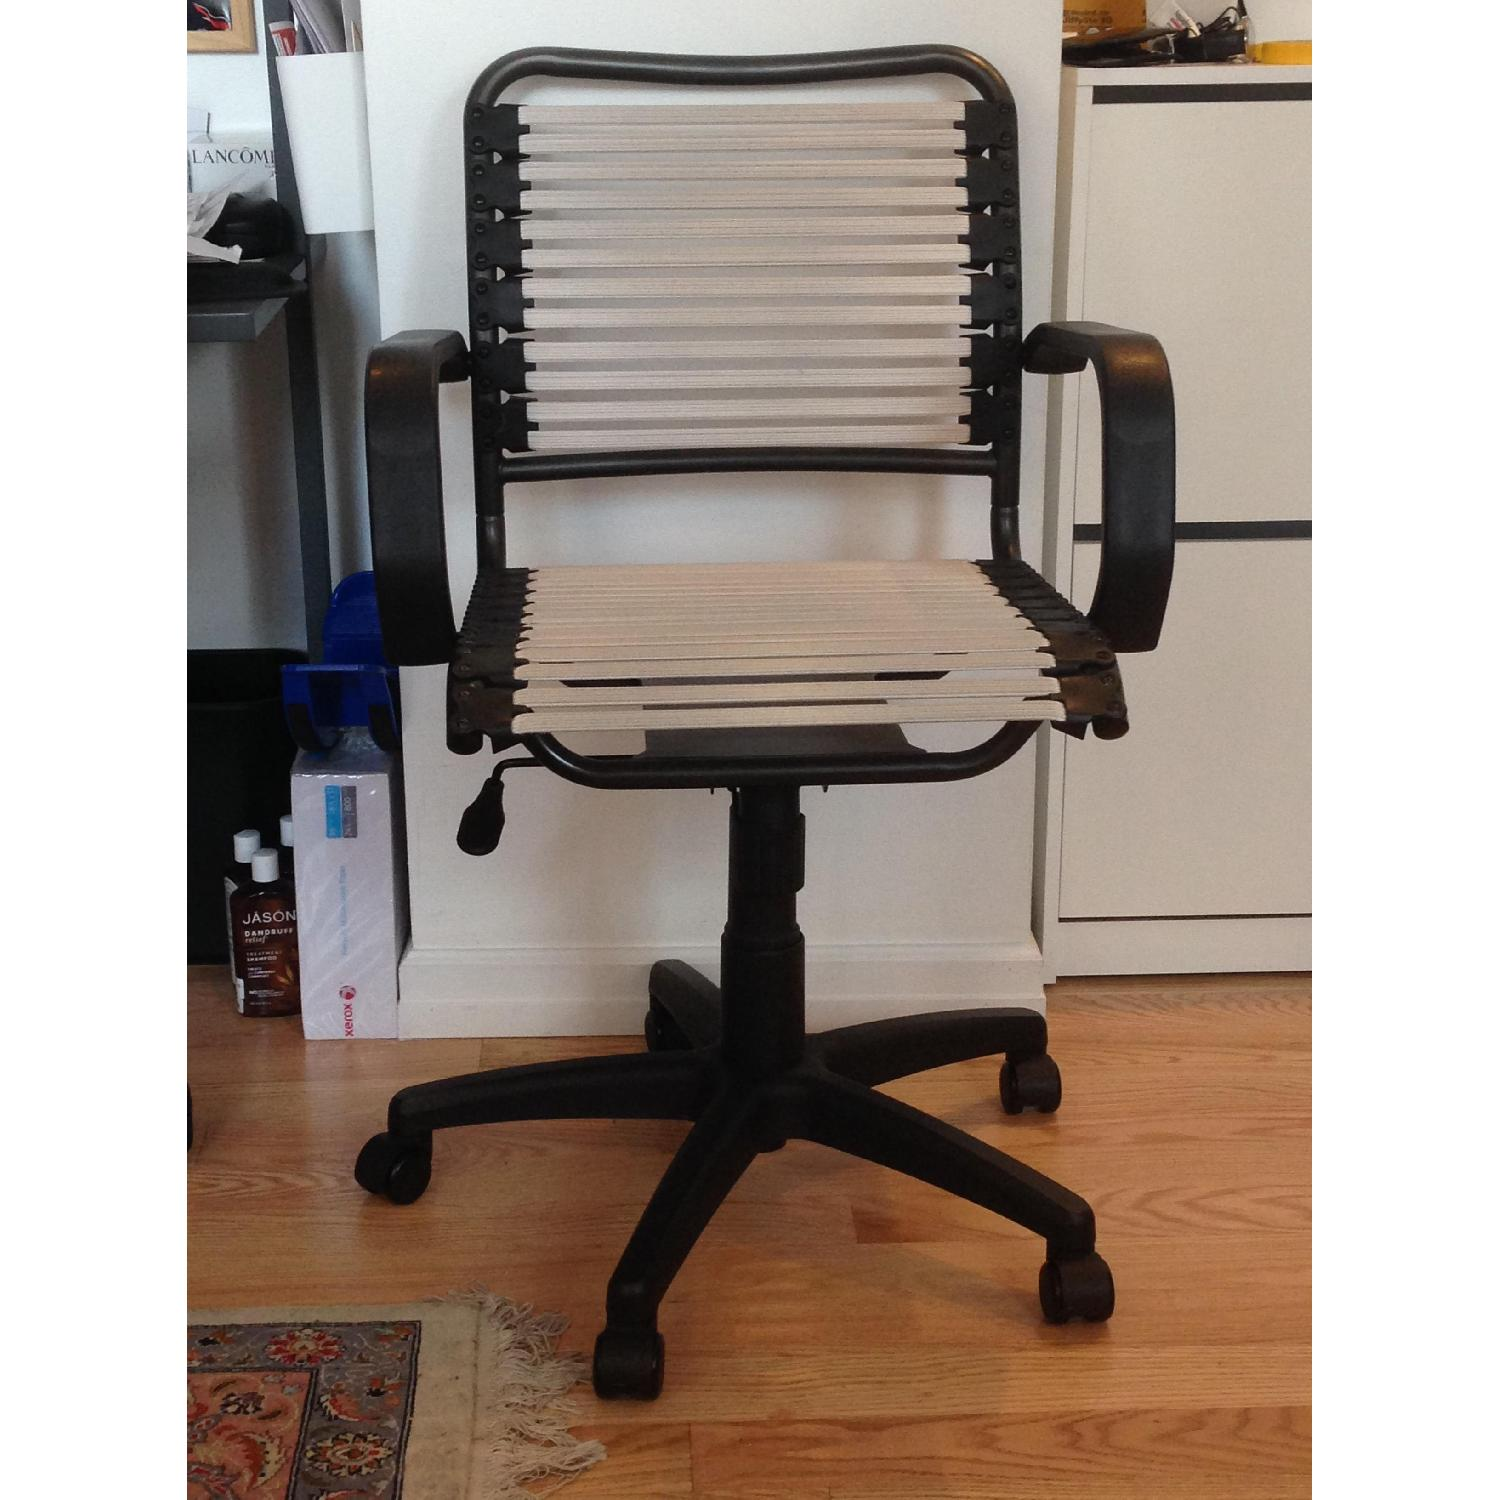 Container Store White Flat Bungee Office Chair w/ Arms - image-1